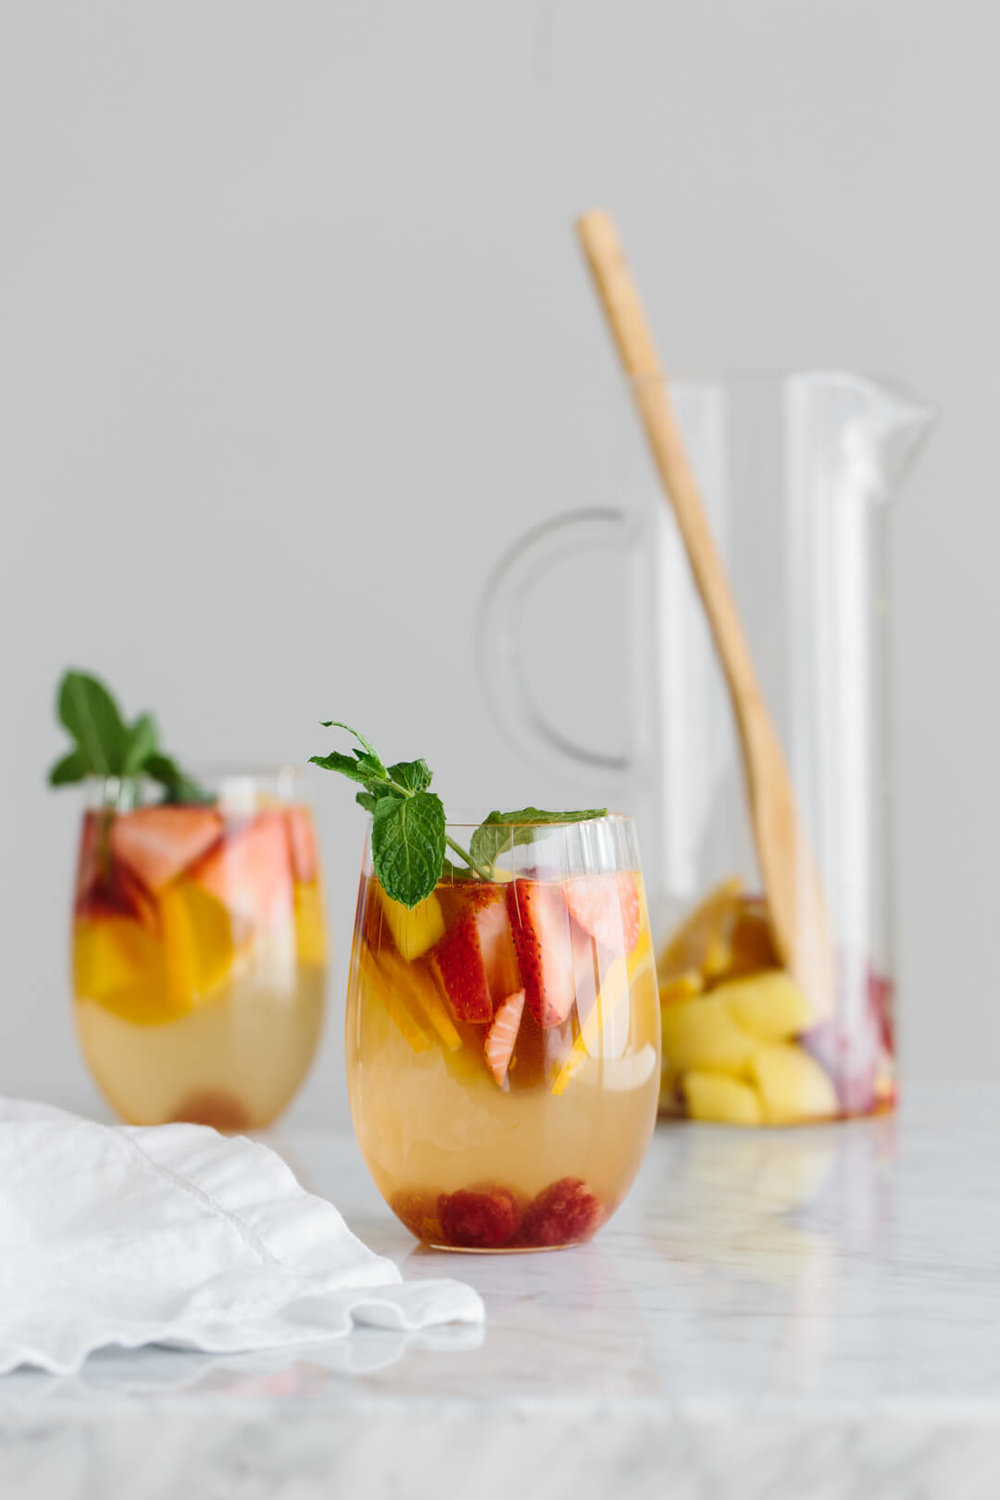 WHITE SANGRIA WITH MANGO AND BERRIES